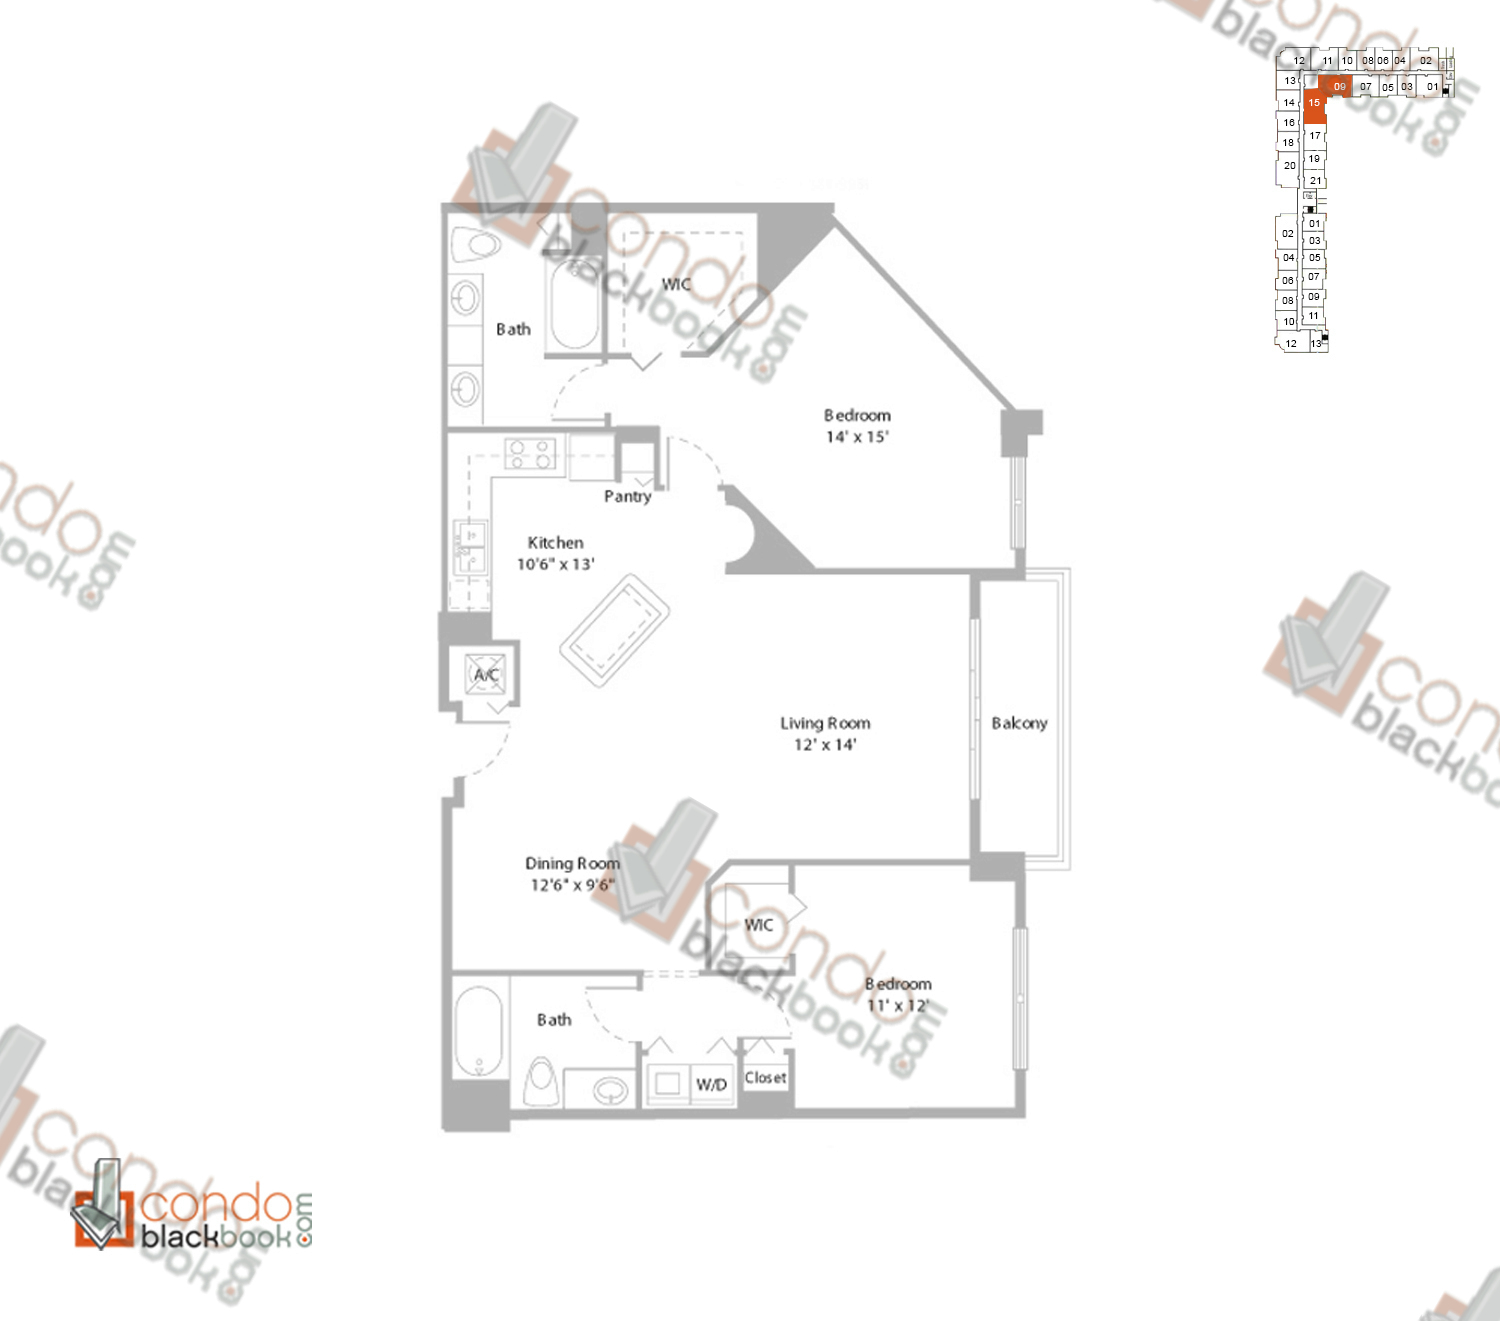 Floor plan for Cite Edgewater Miami, model G2_LOFT, line 09, 15, 2/2 bedrooms, 1,287 sq ft